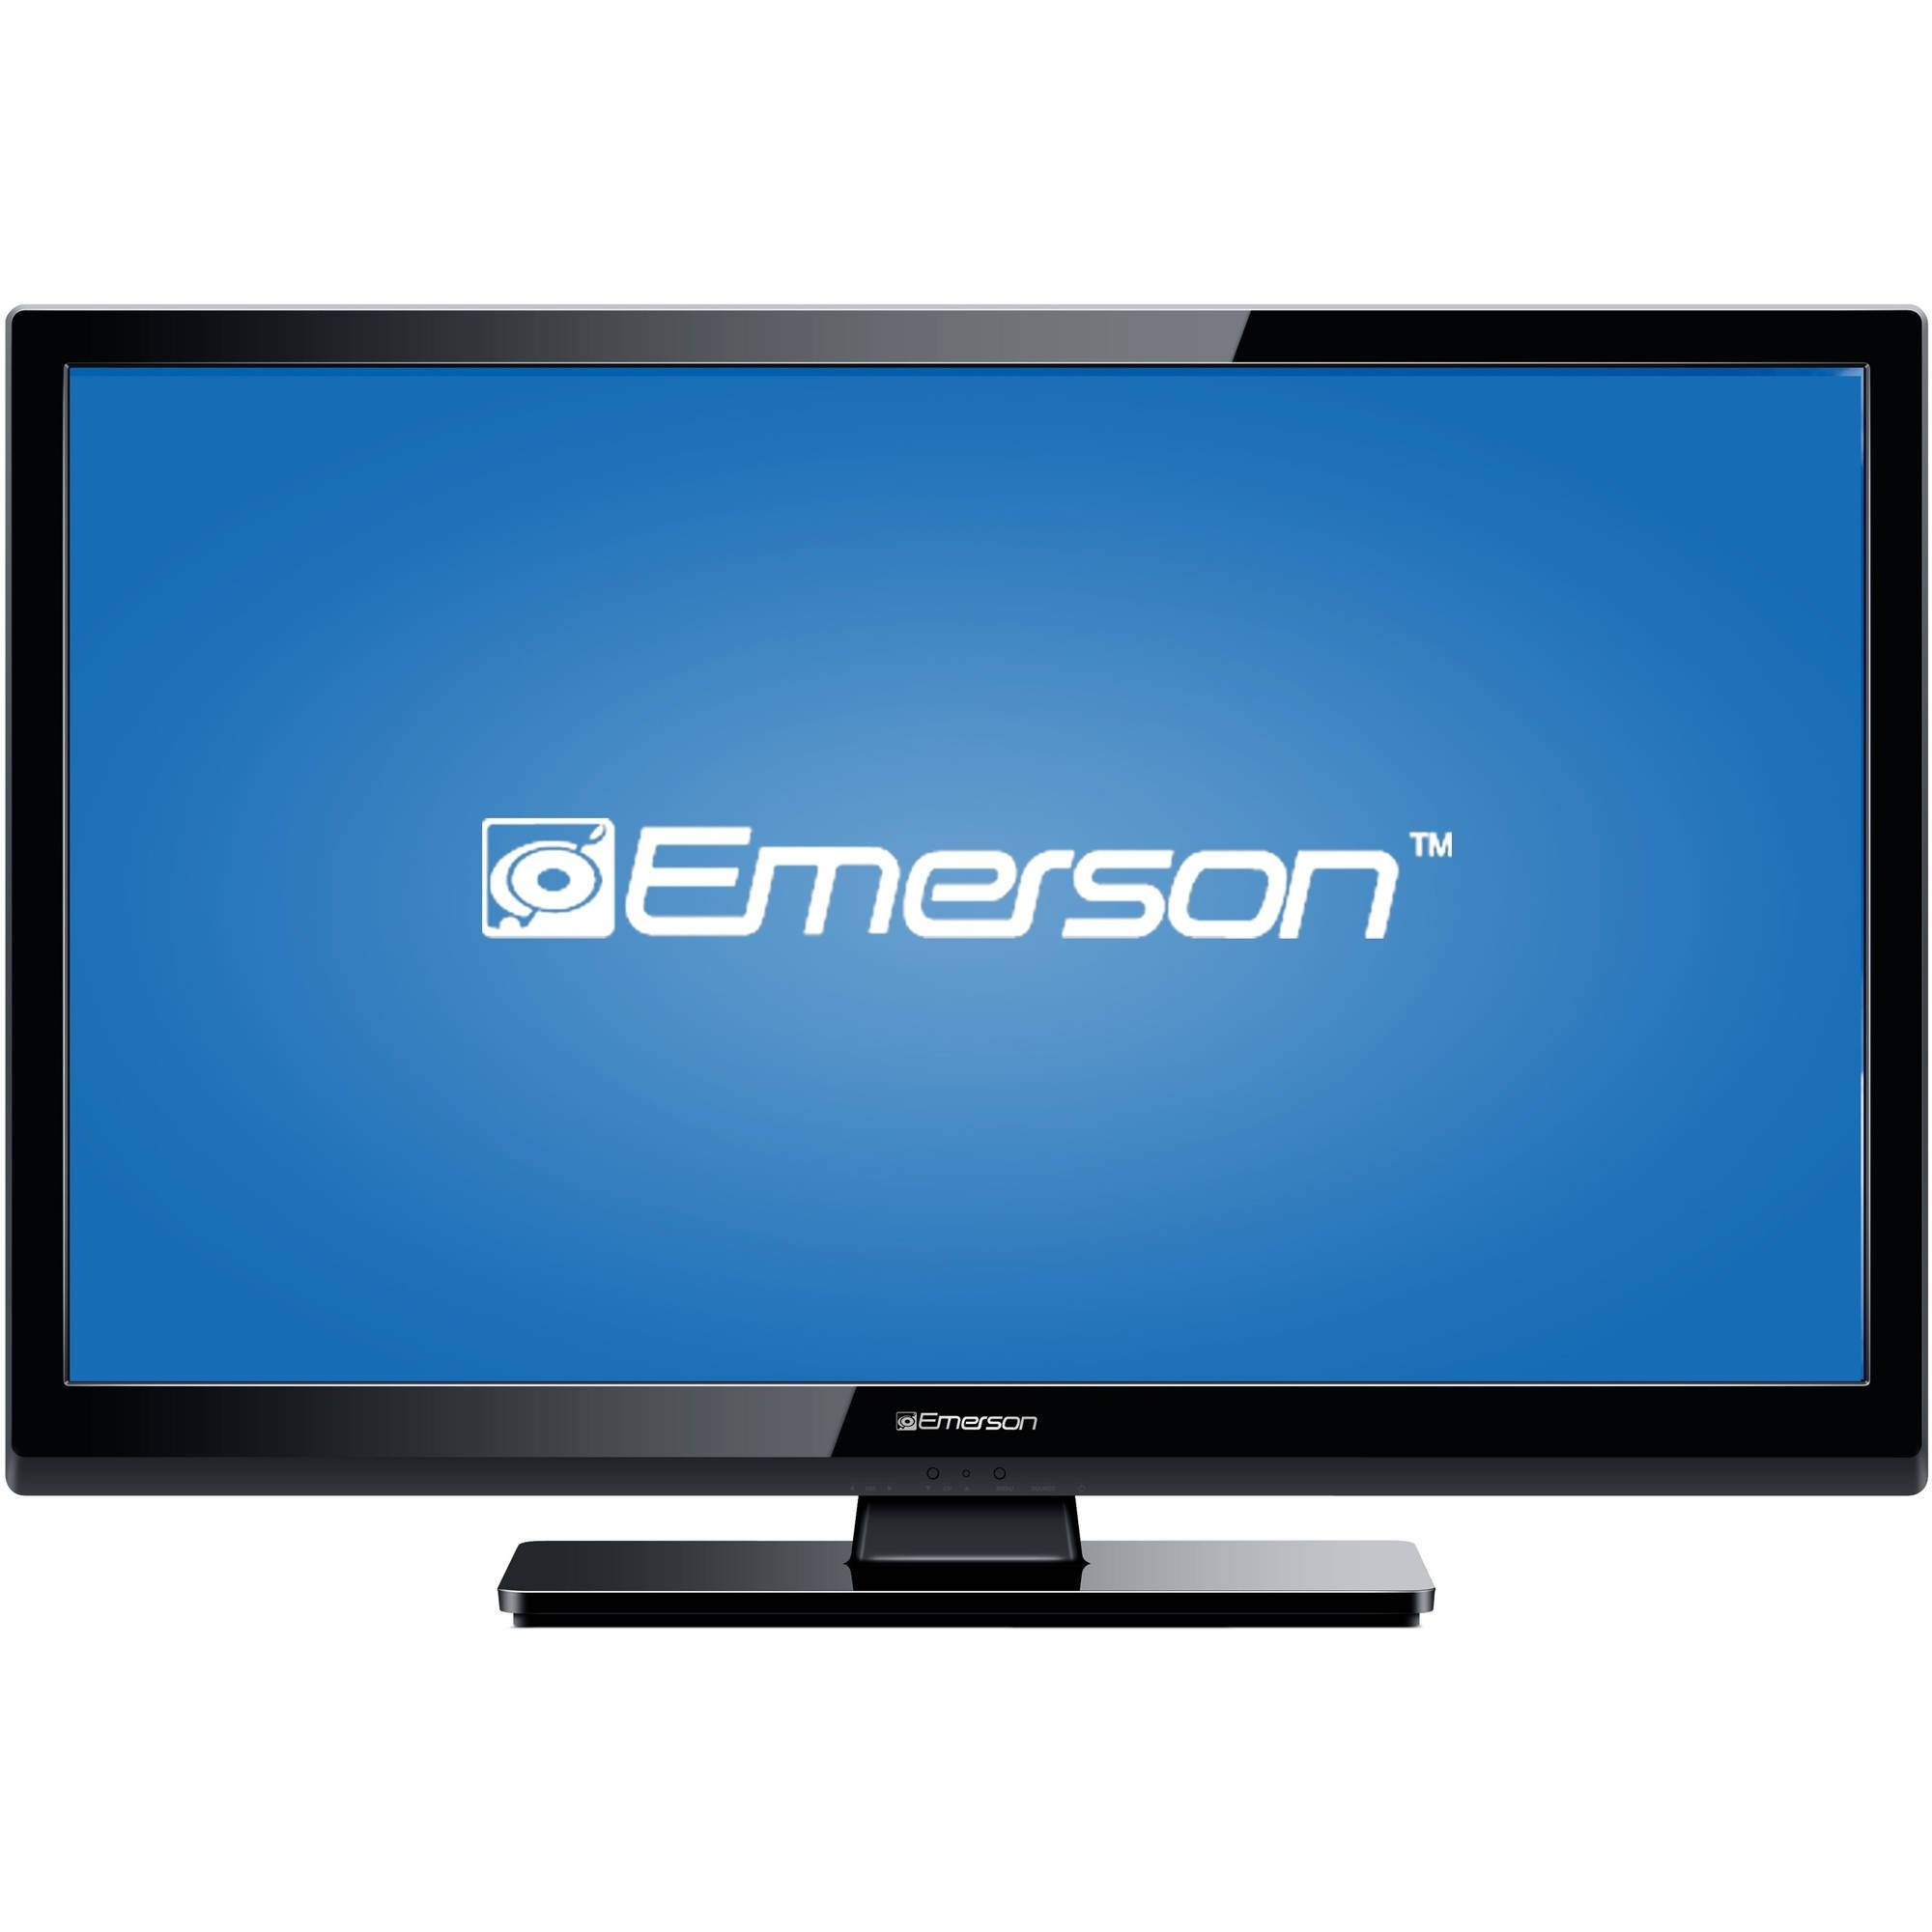 "Emerson Lf320Em4 32"" 720P 60Hz Class Led Hdtv - Walmart with Emerson Tv Stands (Image 8 of 15)"